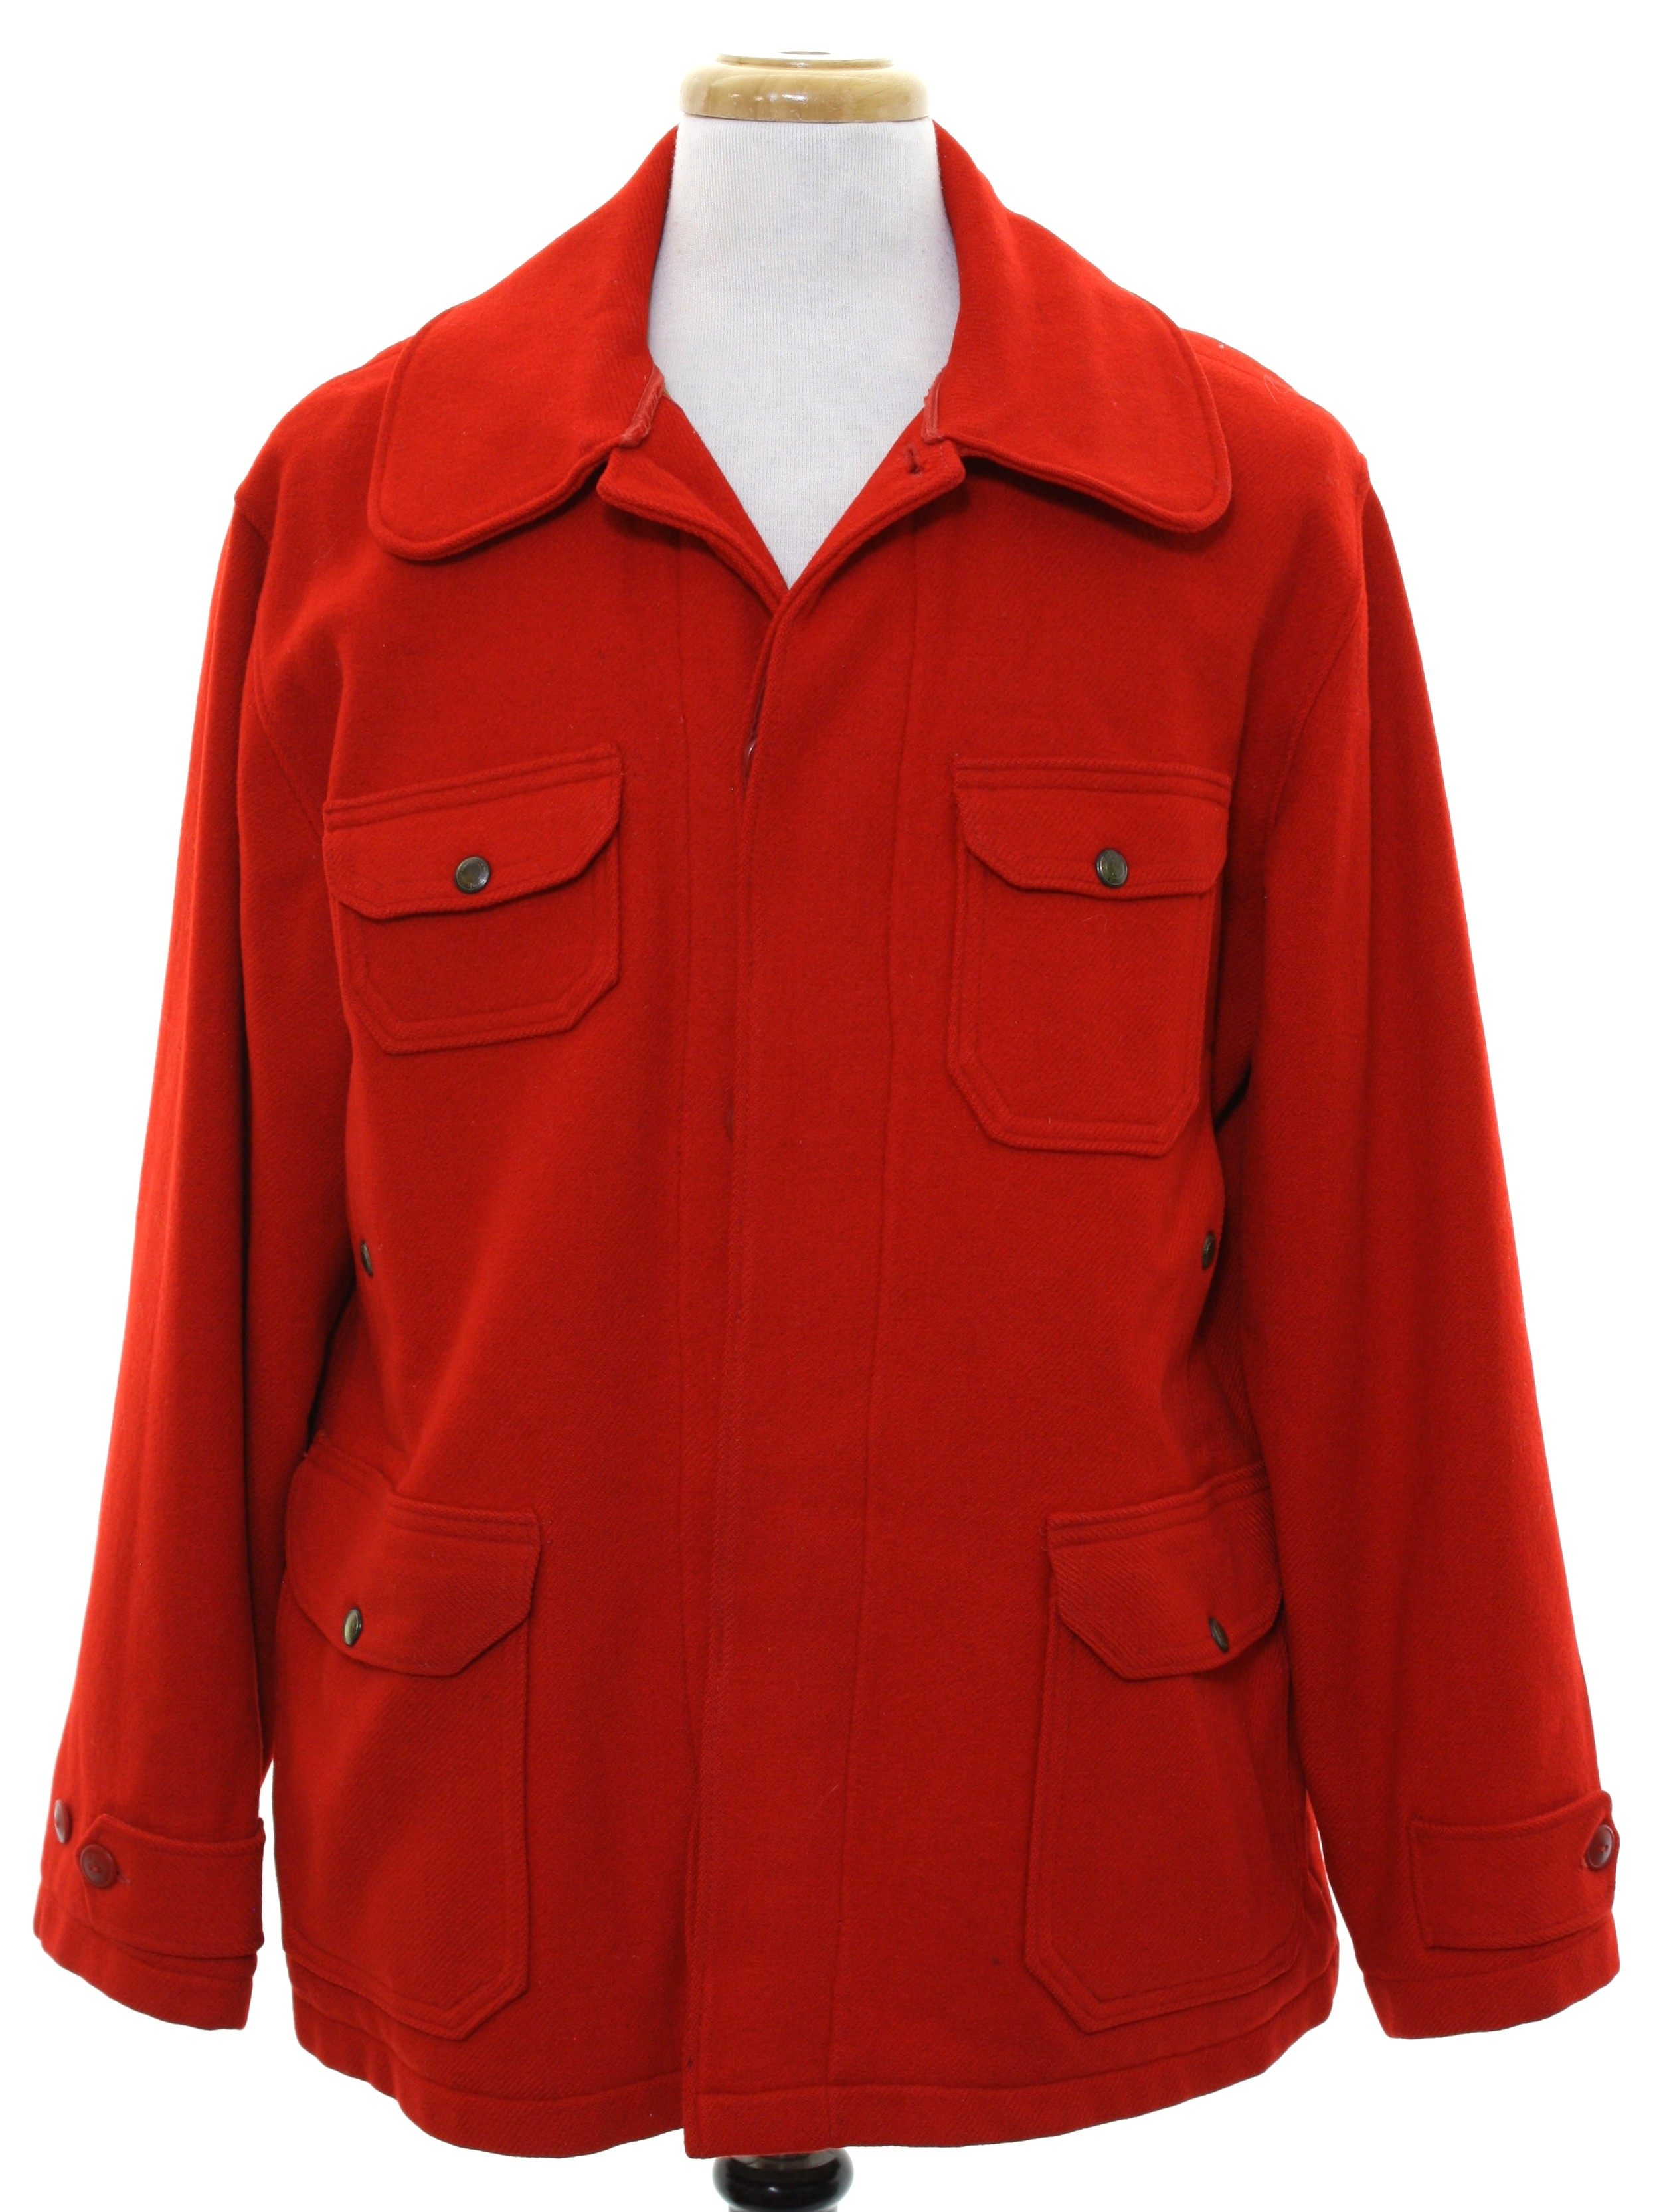 6cb00d5bd675d Vintage Woolrich 1950s Jacket: Early 50s -Woolrich- Mens red heavy ...